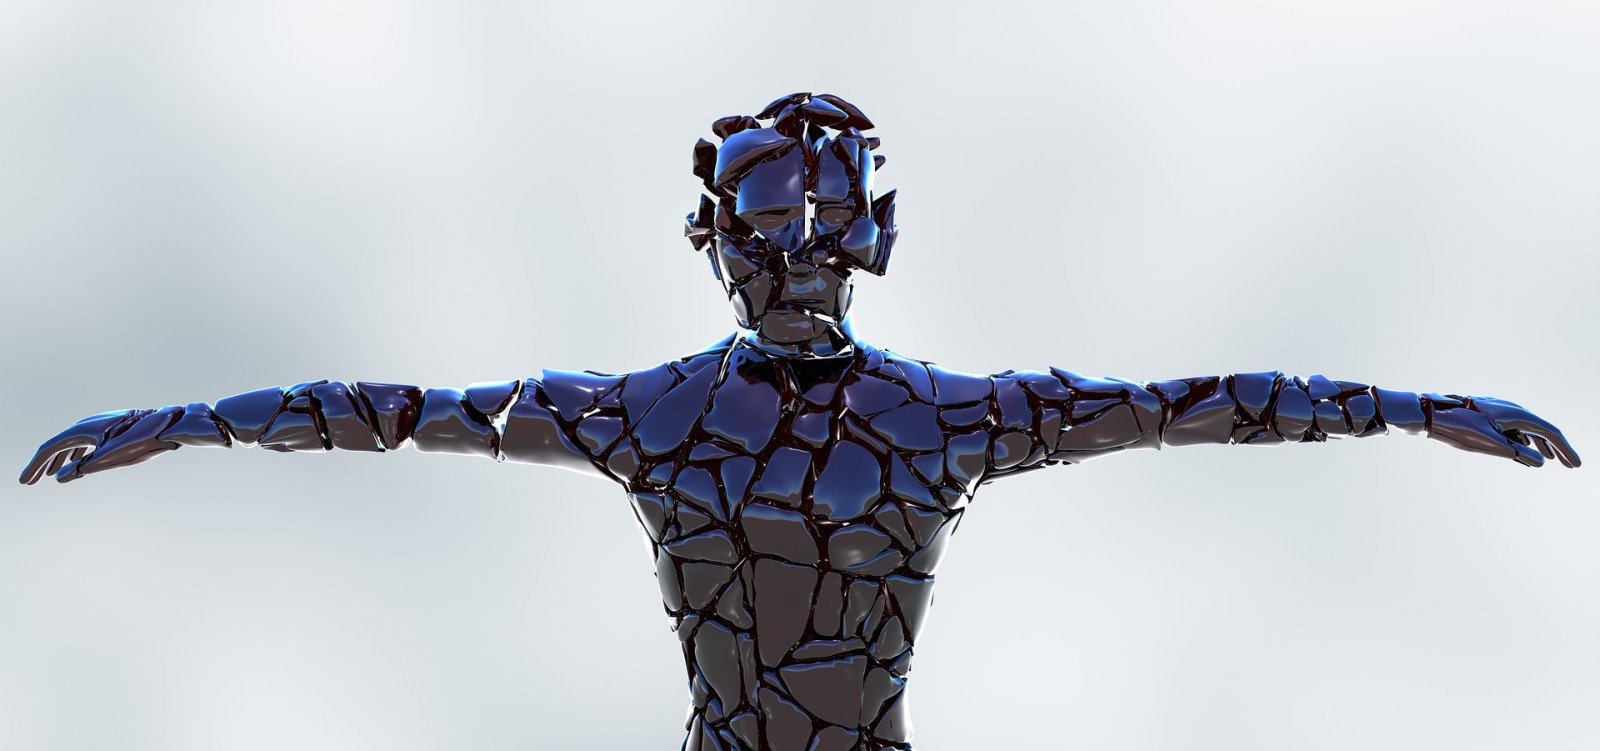 Why should we fear artificial intelligence?